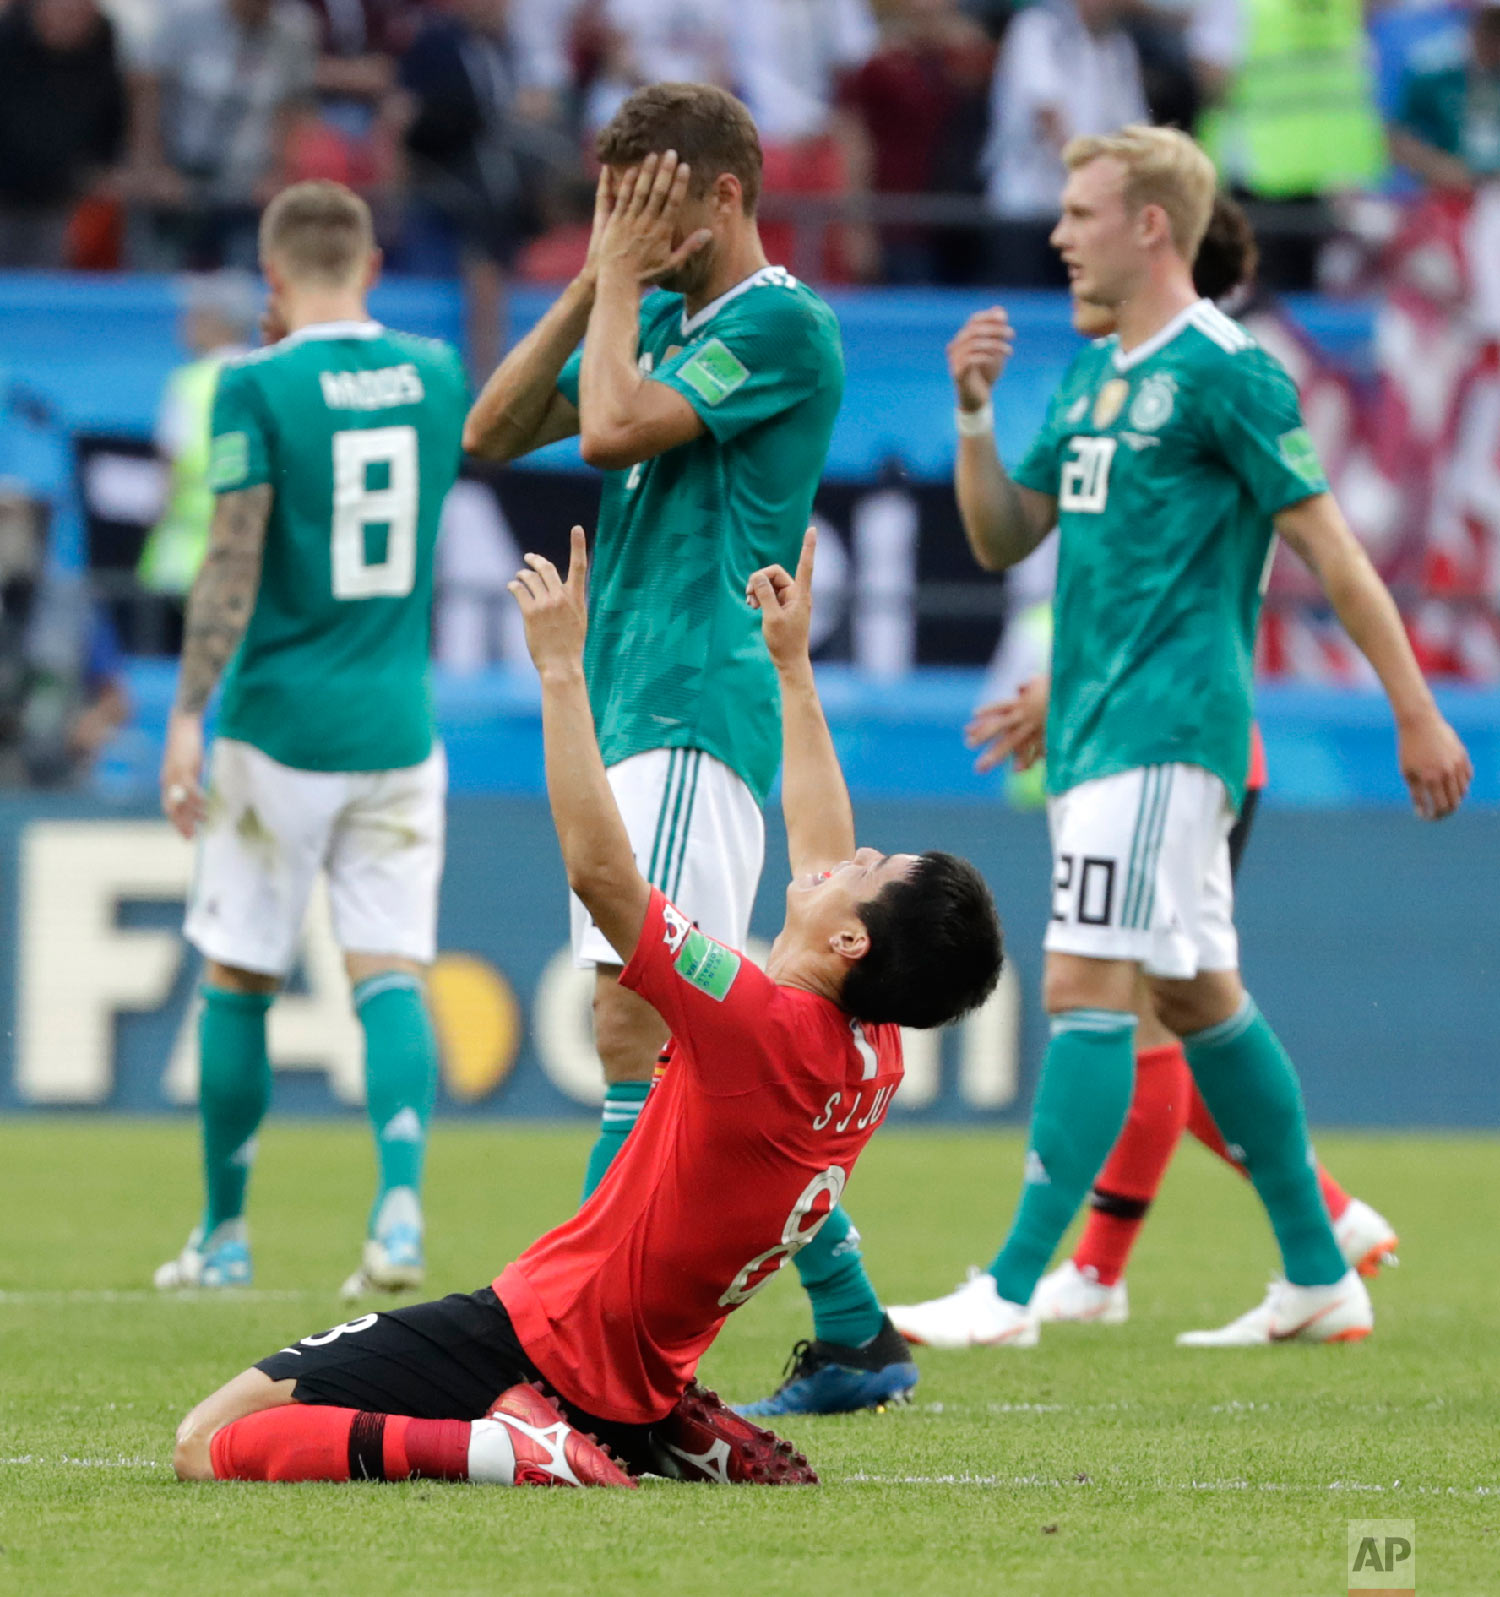 Germany's players walk off the pitch as South Korea's Ju Se-jong, front celebrates after the group F match between South Korea and Germany, at the 2018 soccer World Cup in the Kazan Arena in Kazan, Russia on June 27, 2018. (AP Photo/Lee Jin-man)